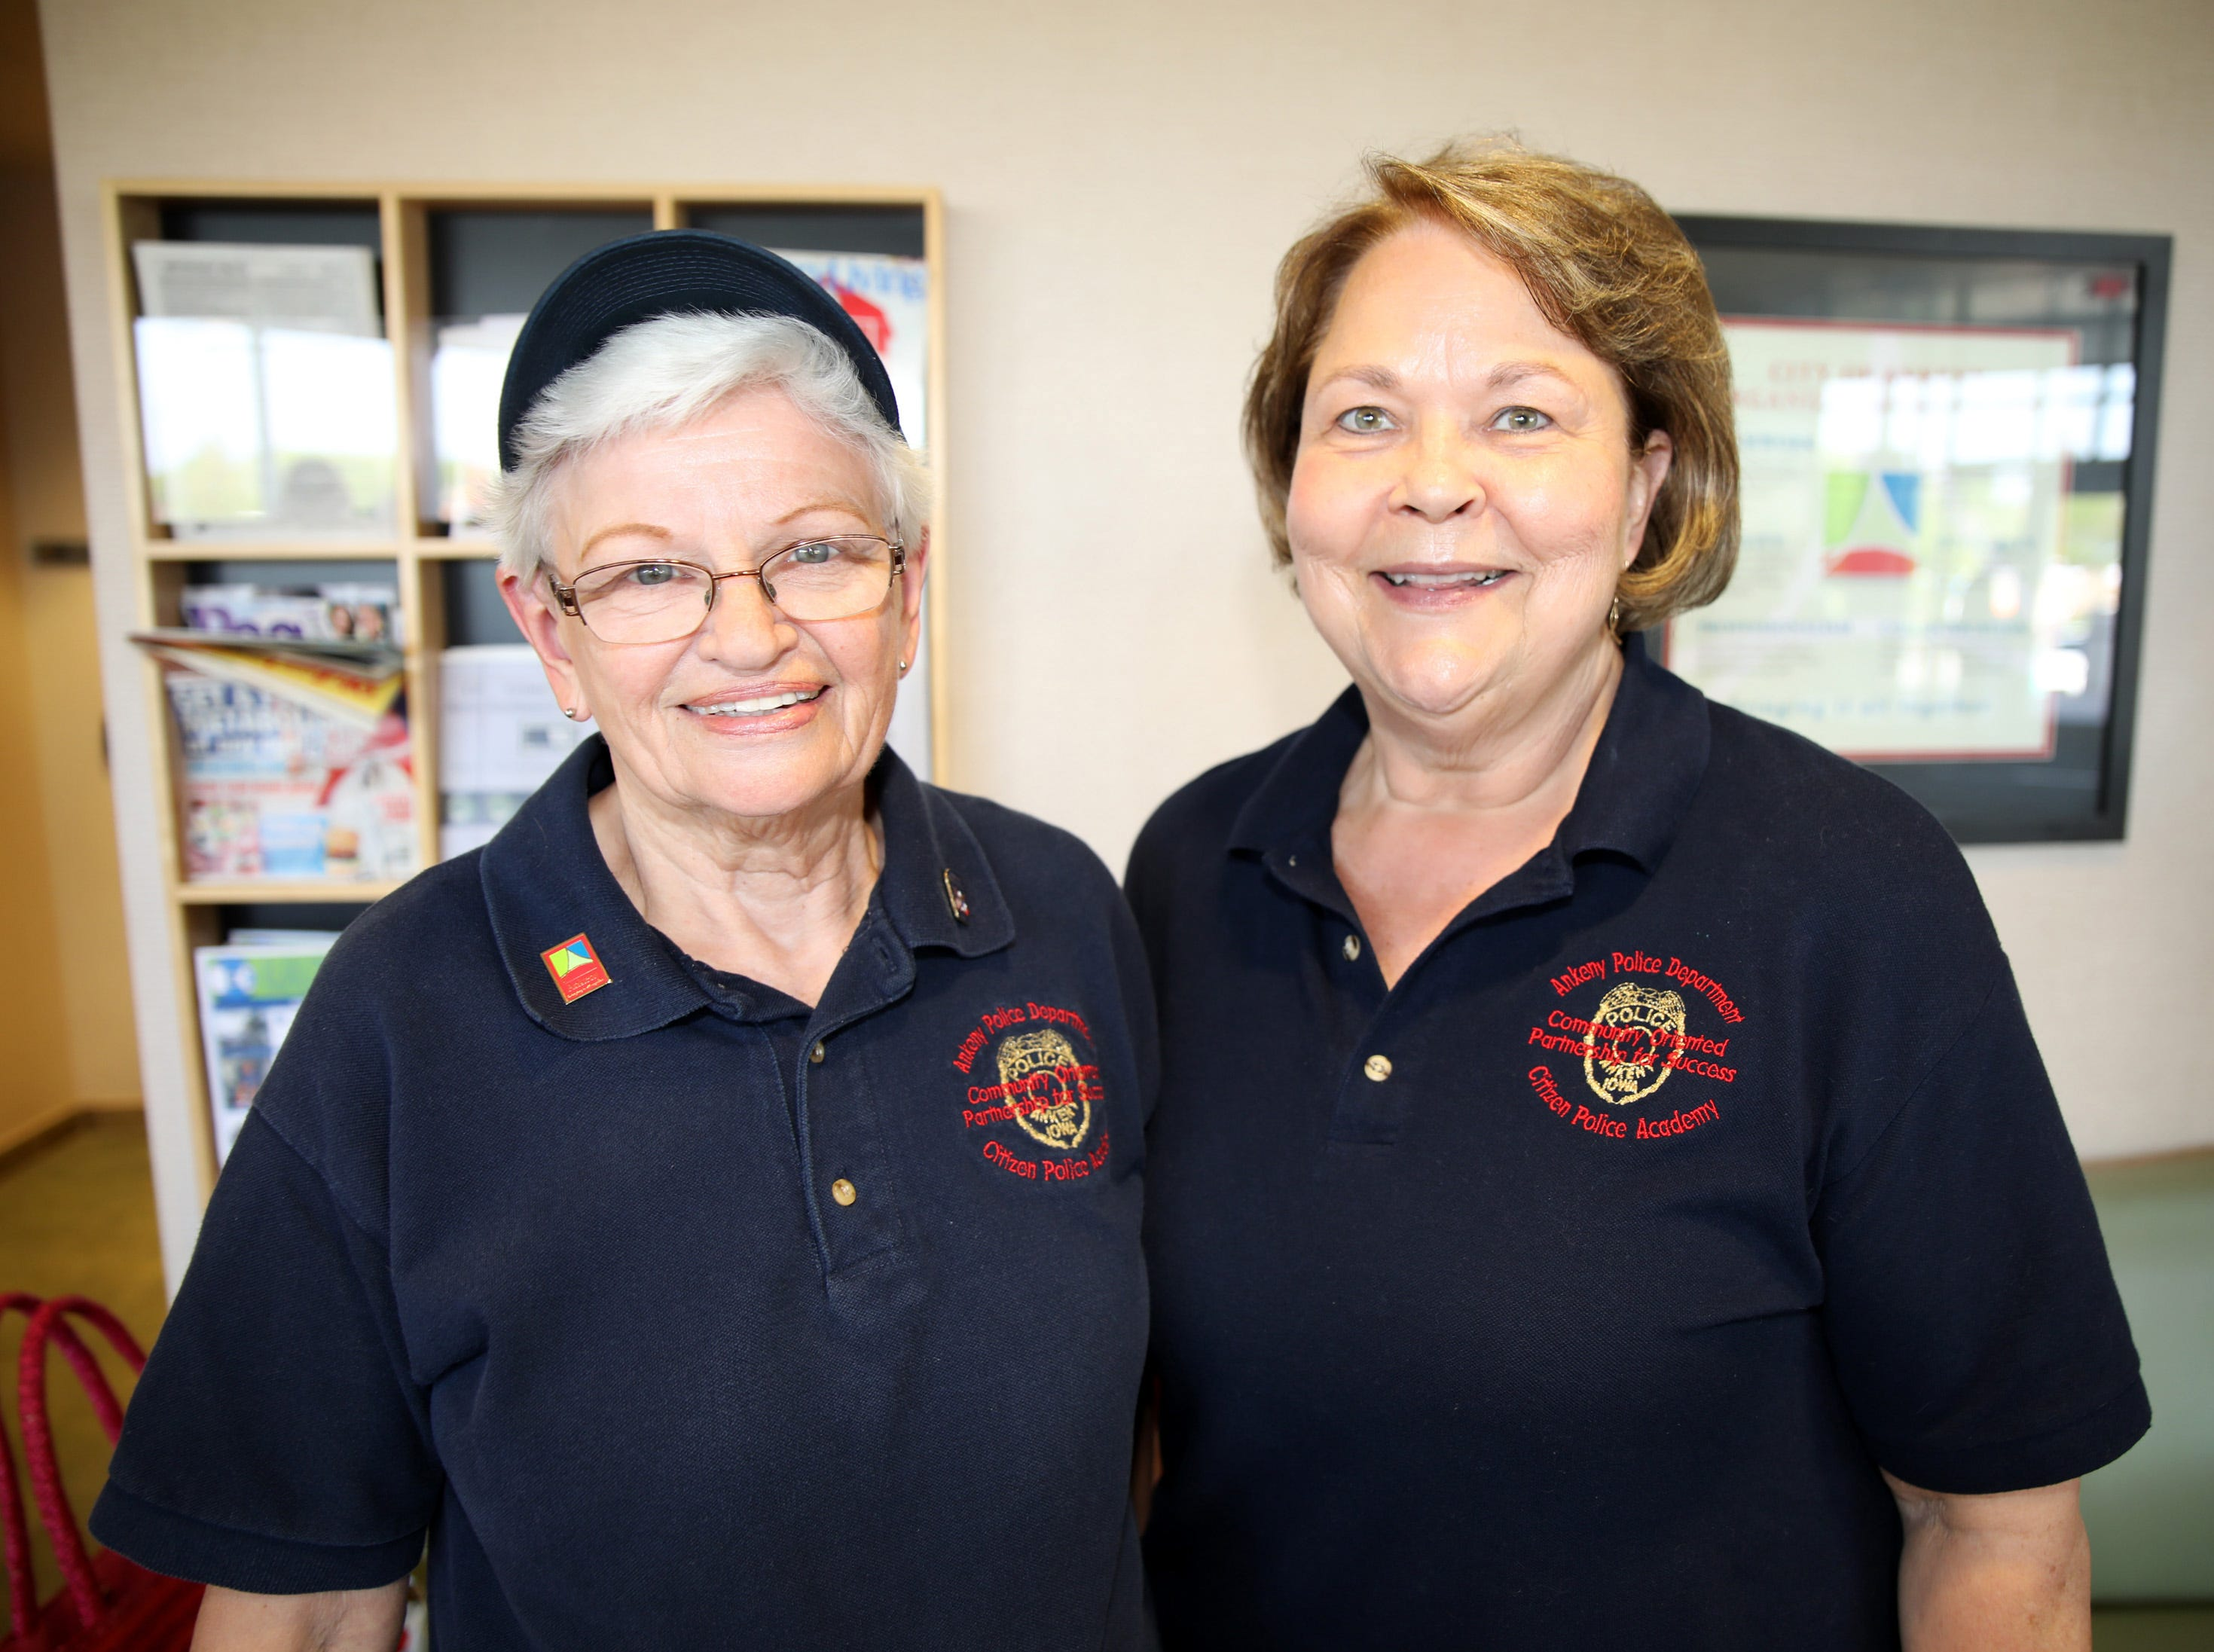 Barb Garland, left, and Jill McCarty of Ankeny Citizen's Police Academy help organize the tours of the police station during the Ankeny Police Week Community Picnic on Tuesday, May 14, 2019 at the Ankeny Police Headquarters located at 411 SW Ordnance Road. The event featured a tour of the police station, magician Jonathon May, free Chick Fil-A sandwiches for the first 1,000 guests, free Kona Ice, temporary tattoos, and a great opportunity to meet the officers who protect and serve the city of Ankeny.